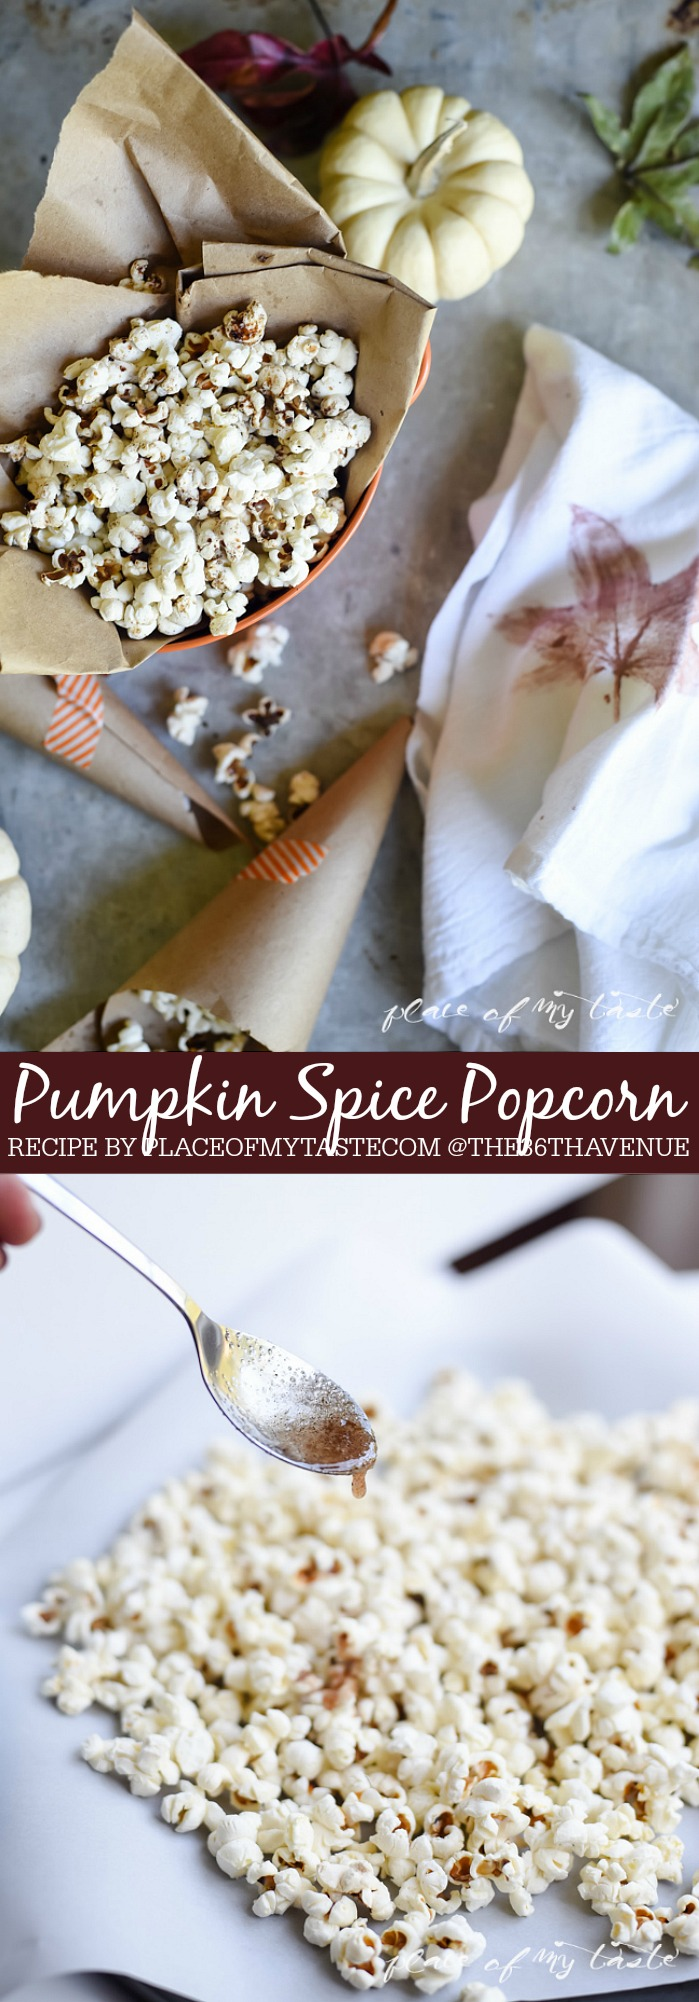 Fall Recipe - This Pumpkin Spice Popcorn is a delicious and festive fall recipe! Perfect to snack on during Thanksgiving or give it away as Halloween treats!